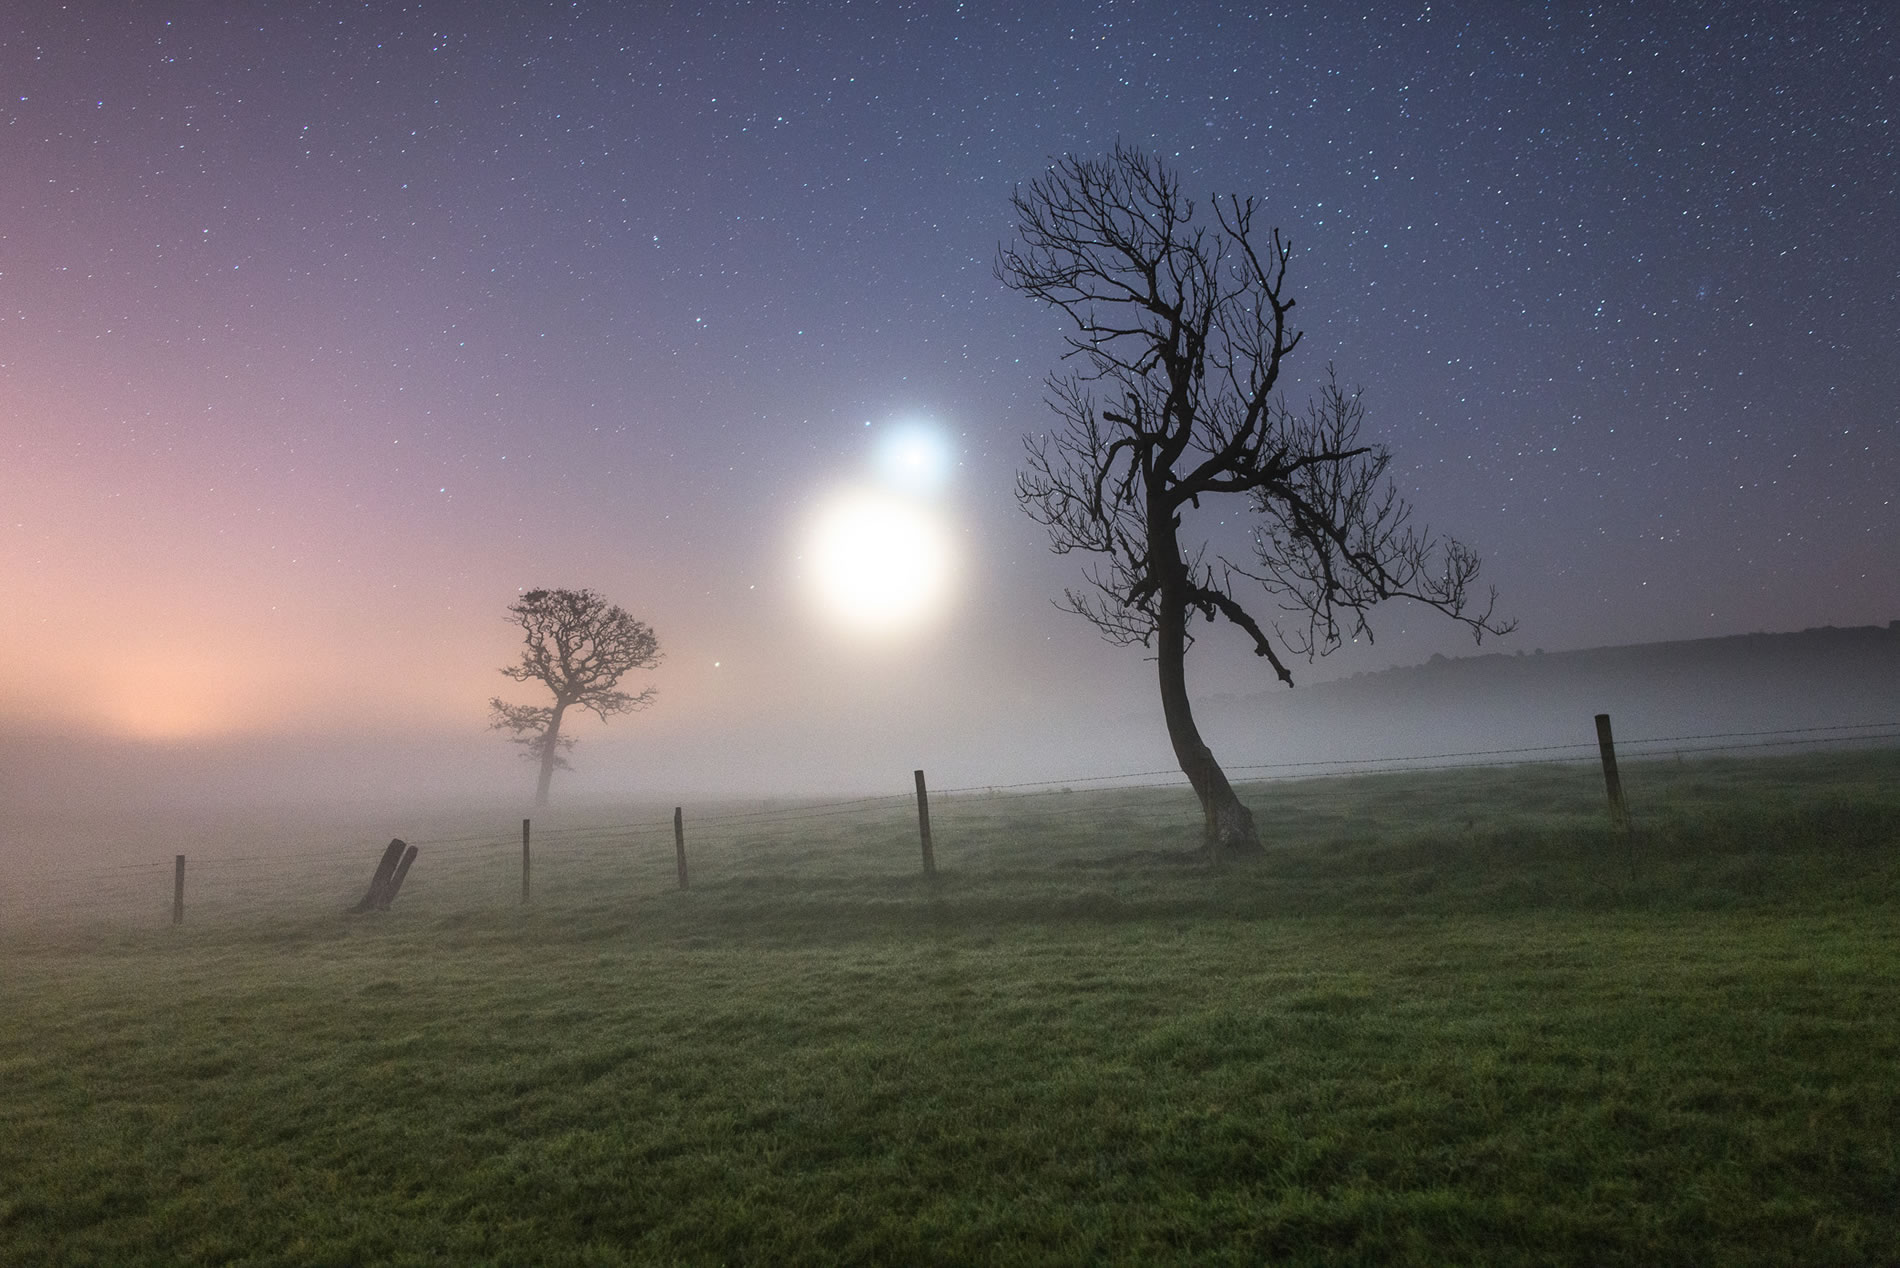 best astronomy photos of the year - photo #32